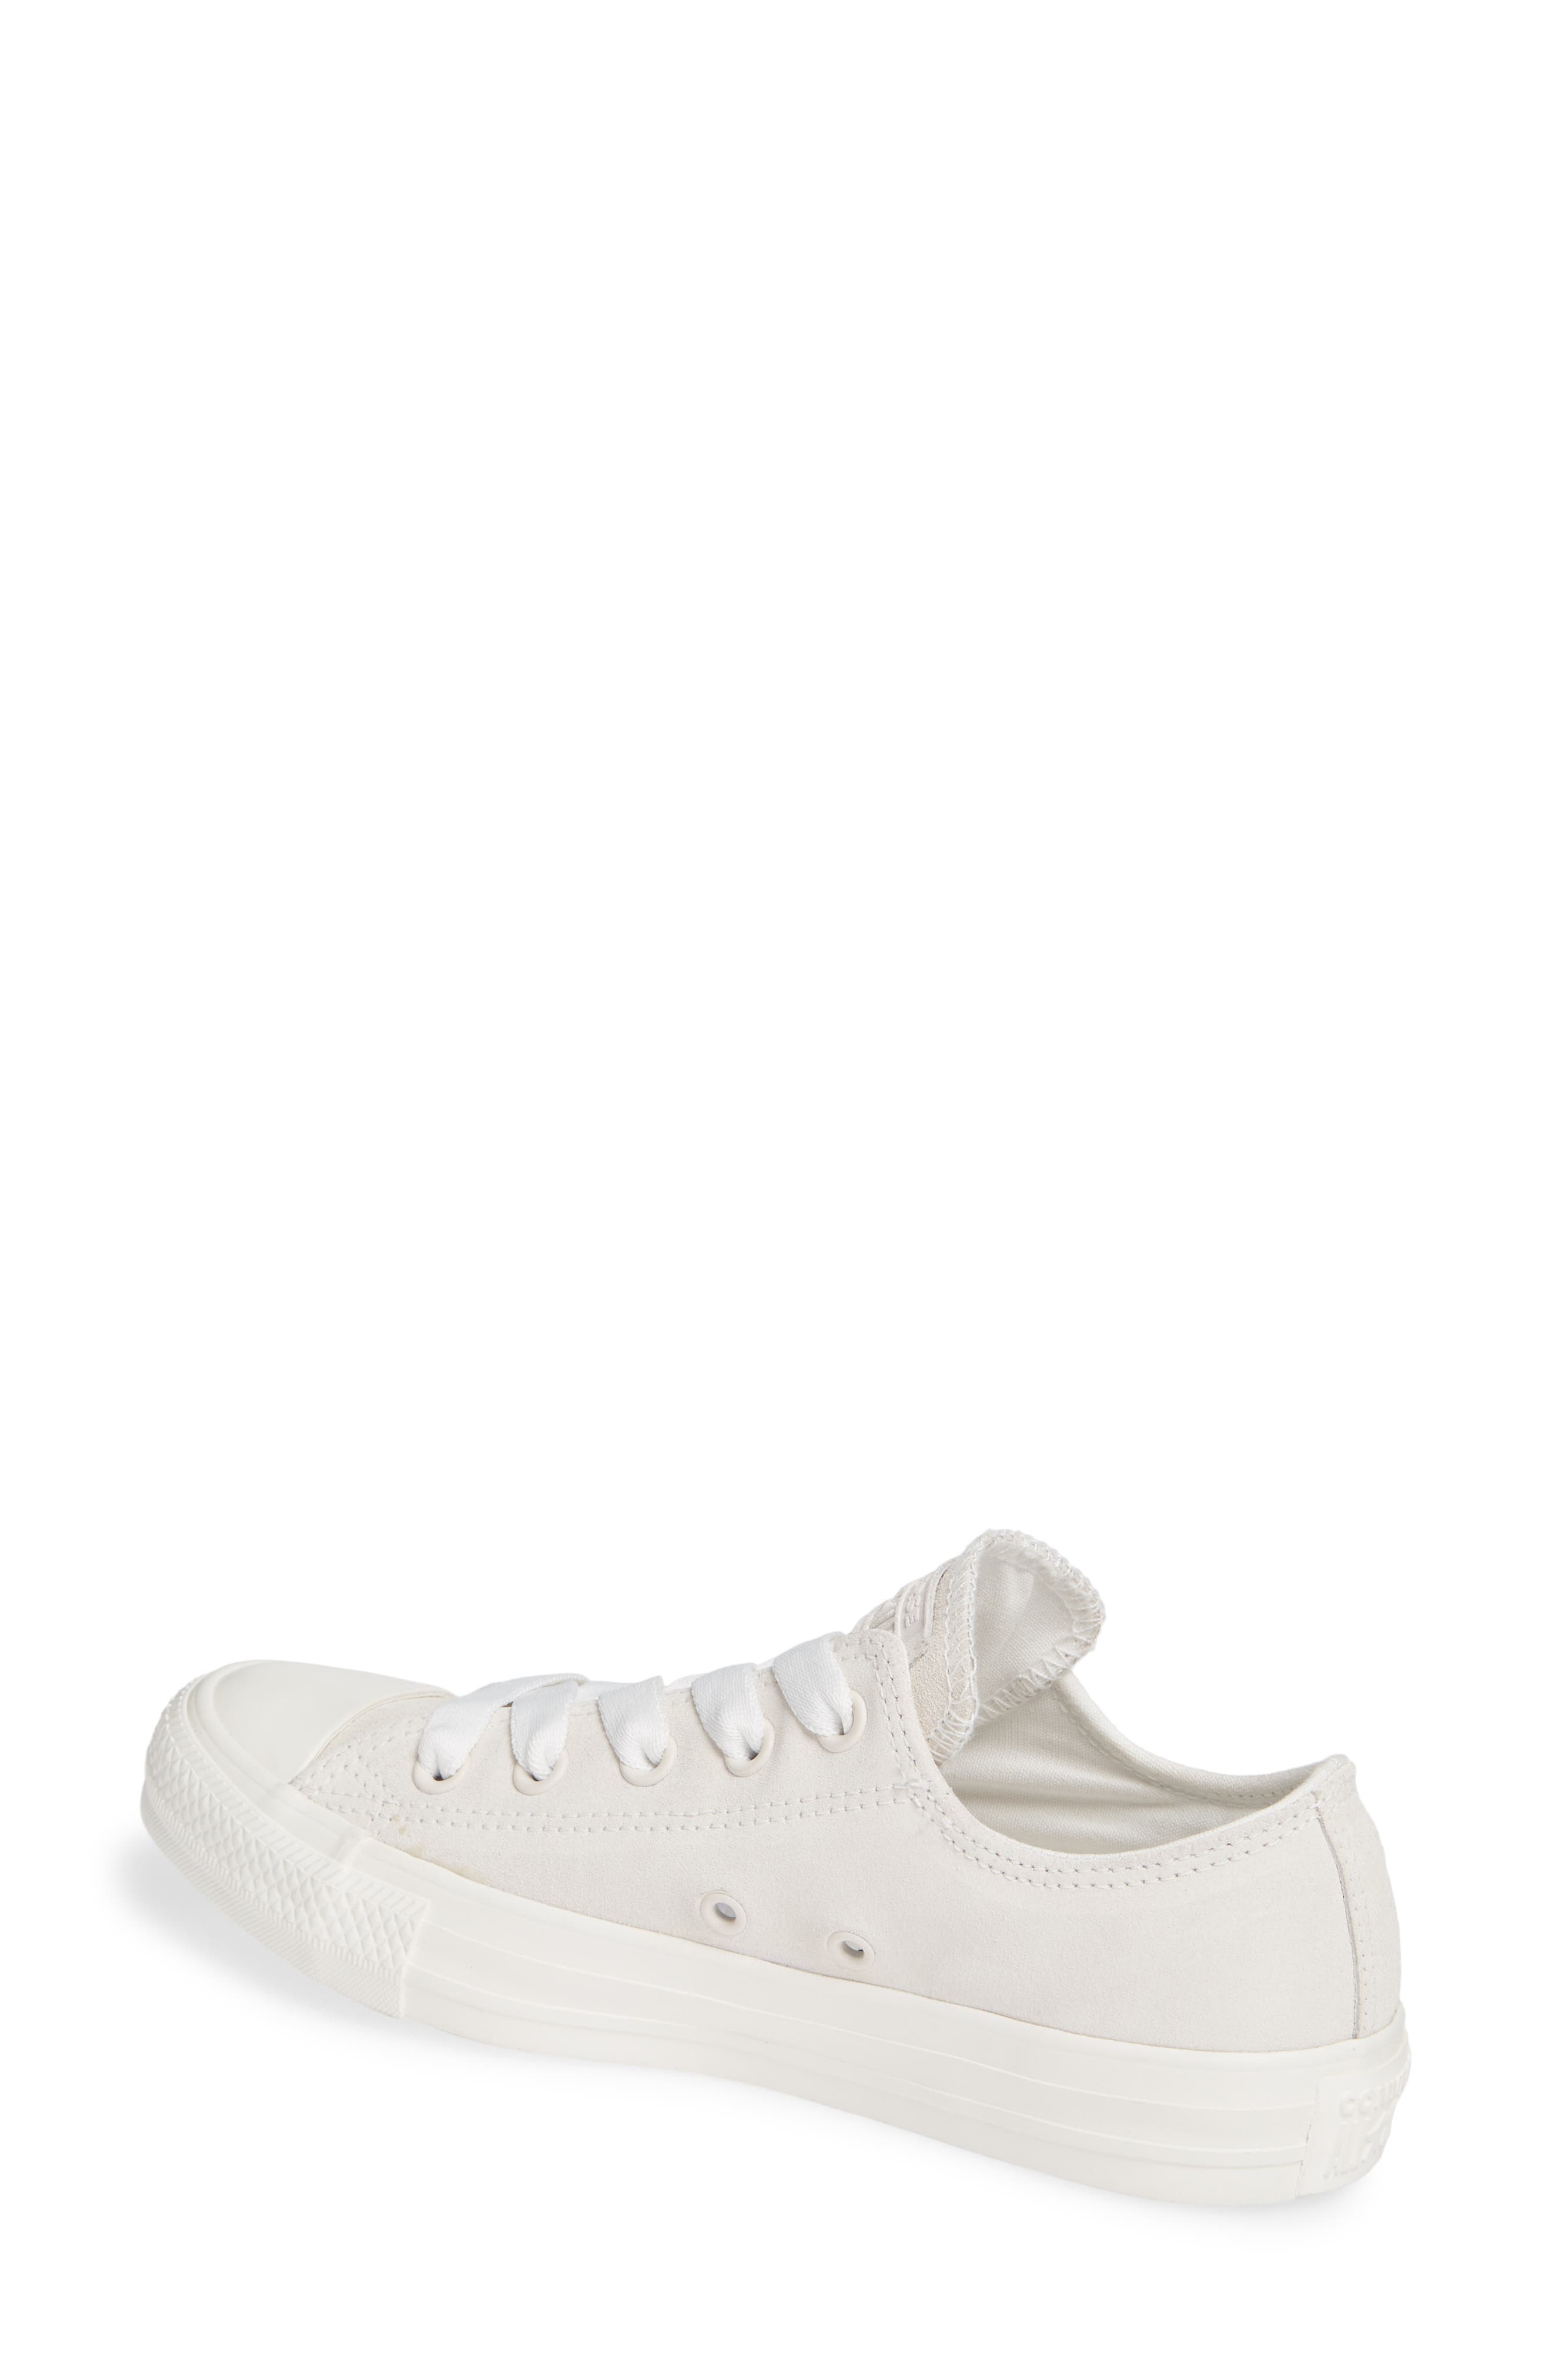 CONVERSE, Chuck Taylor<sup>®</sup> All Star<sup>®</sup> Ox Sneaker, Alternate thumbnail 2, color, VINTAGE WHITE SUEDE